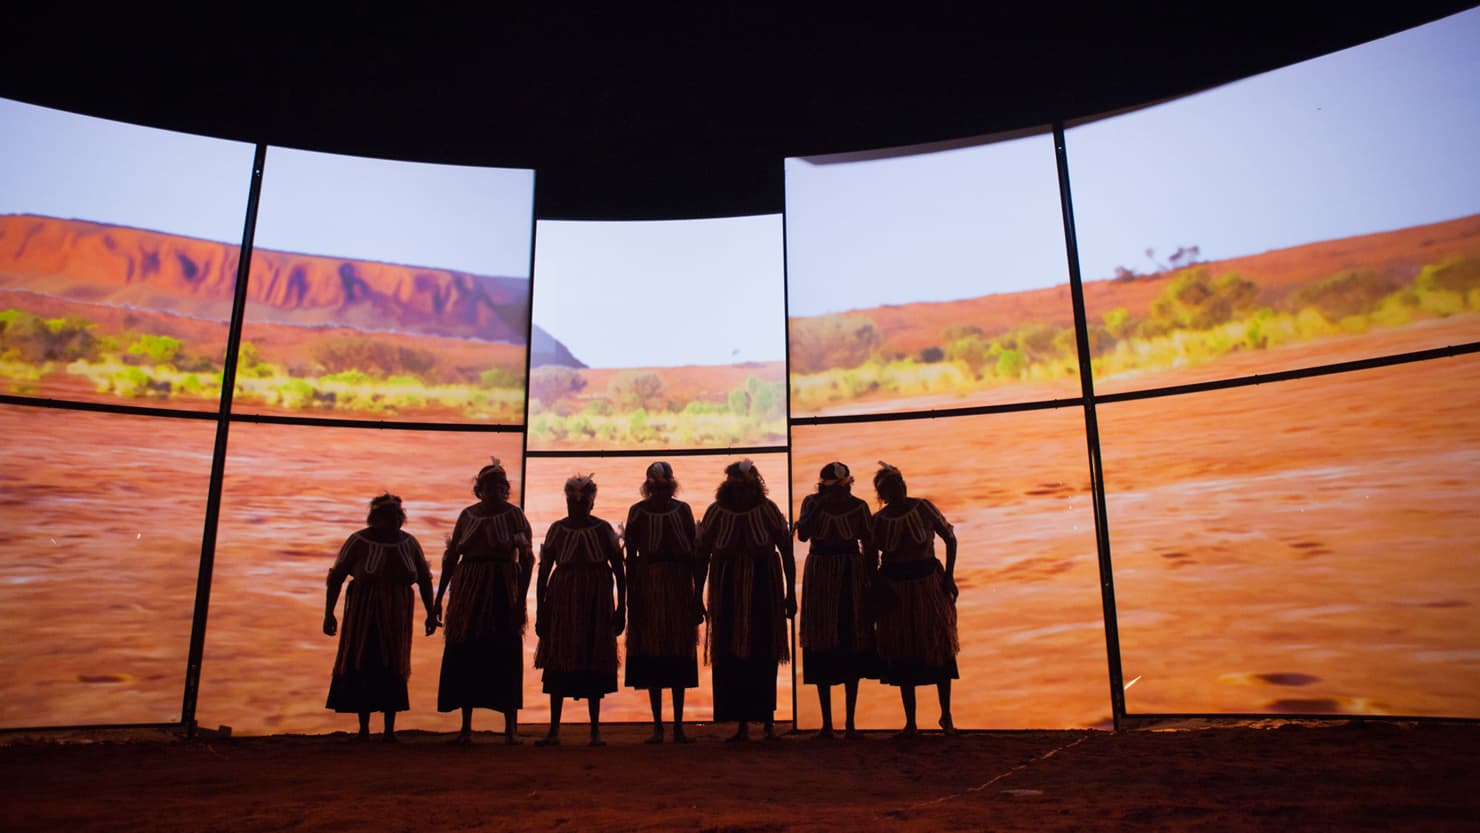 A performance of the Kungkarangkalpa: Seven Sisters songline inma (ceremony) at the National Museum of Australia, Canberra, 2013 Image: National Museum of Australia